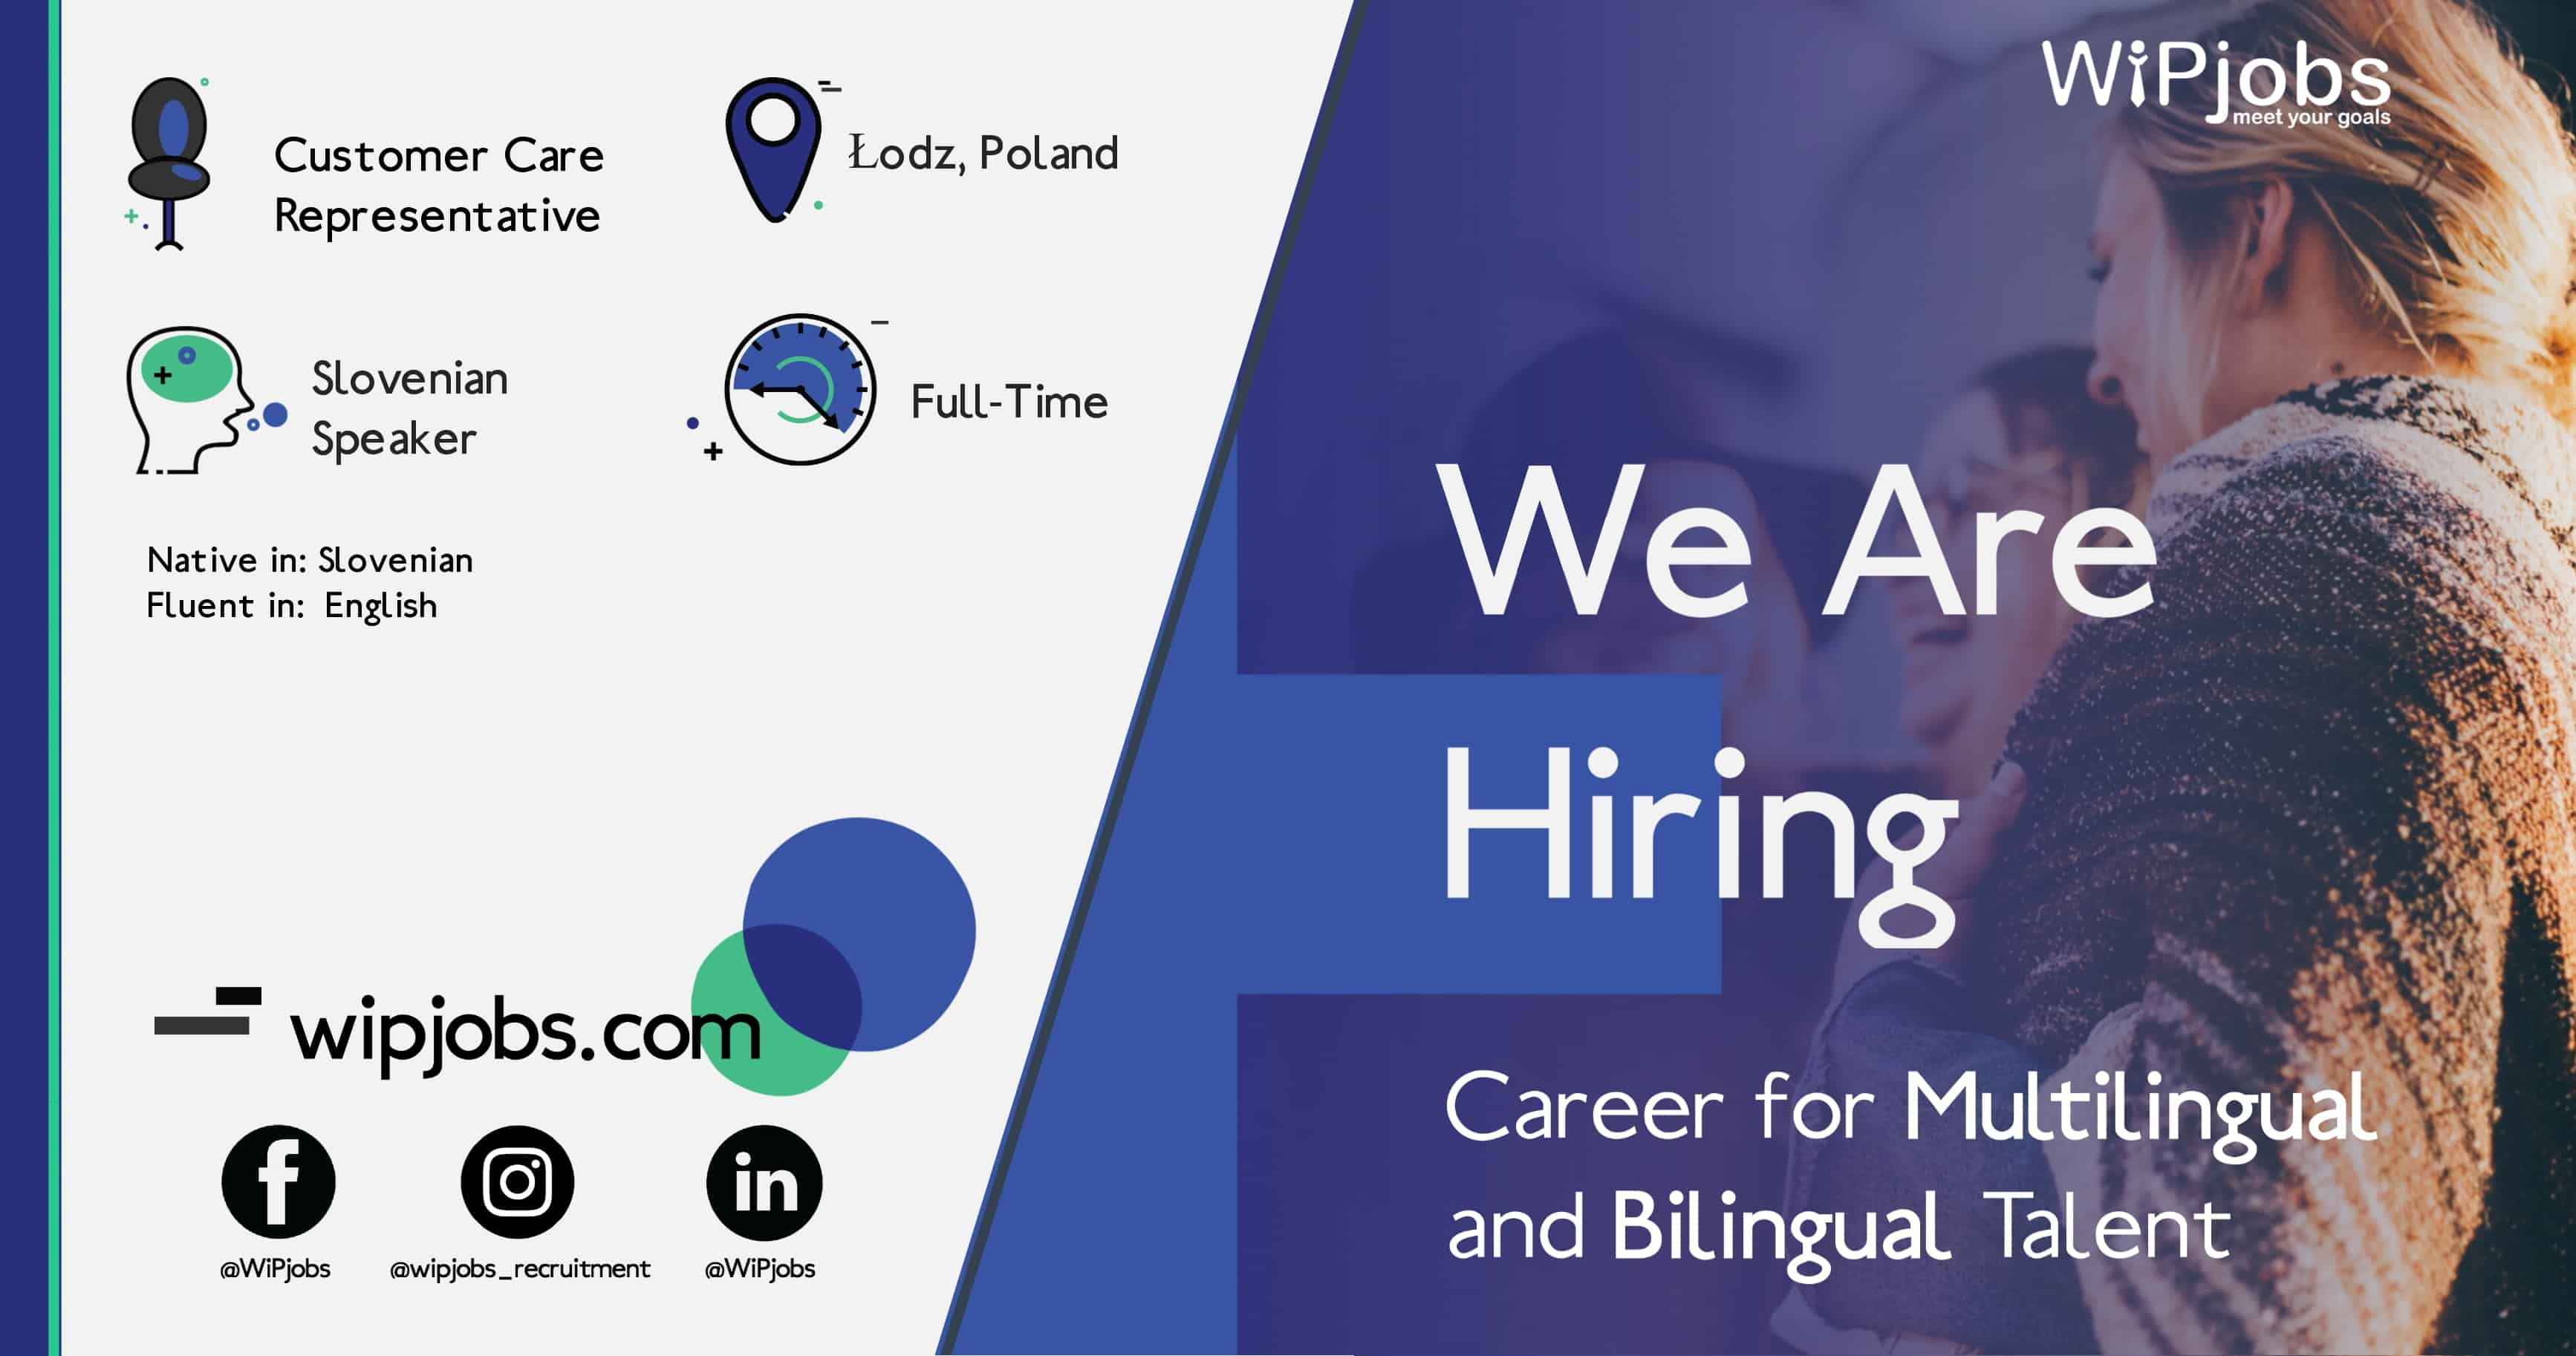 Customer-Care-Representative-SLOVENIAN-Speaker